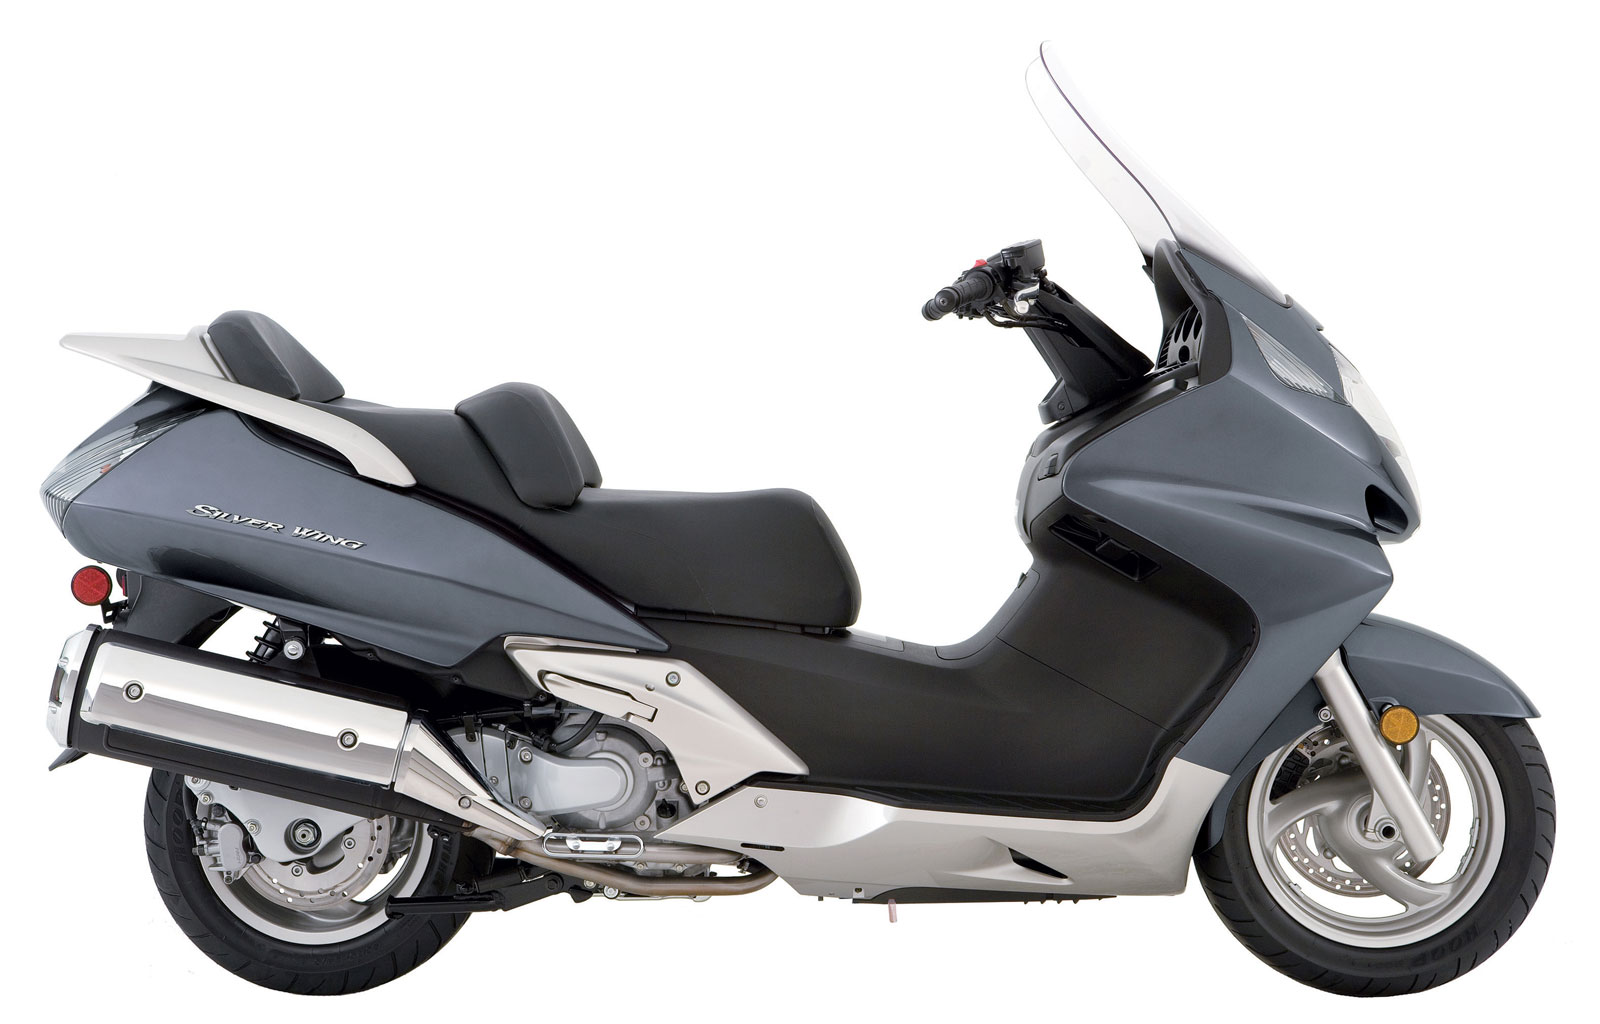 Honda Silver Wing 2009 images #83339